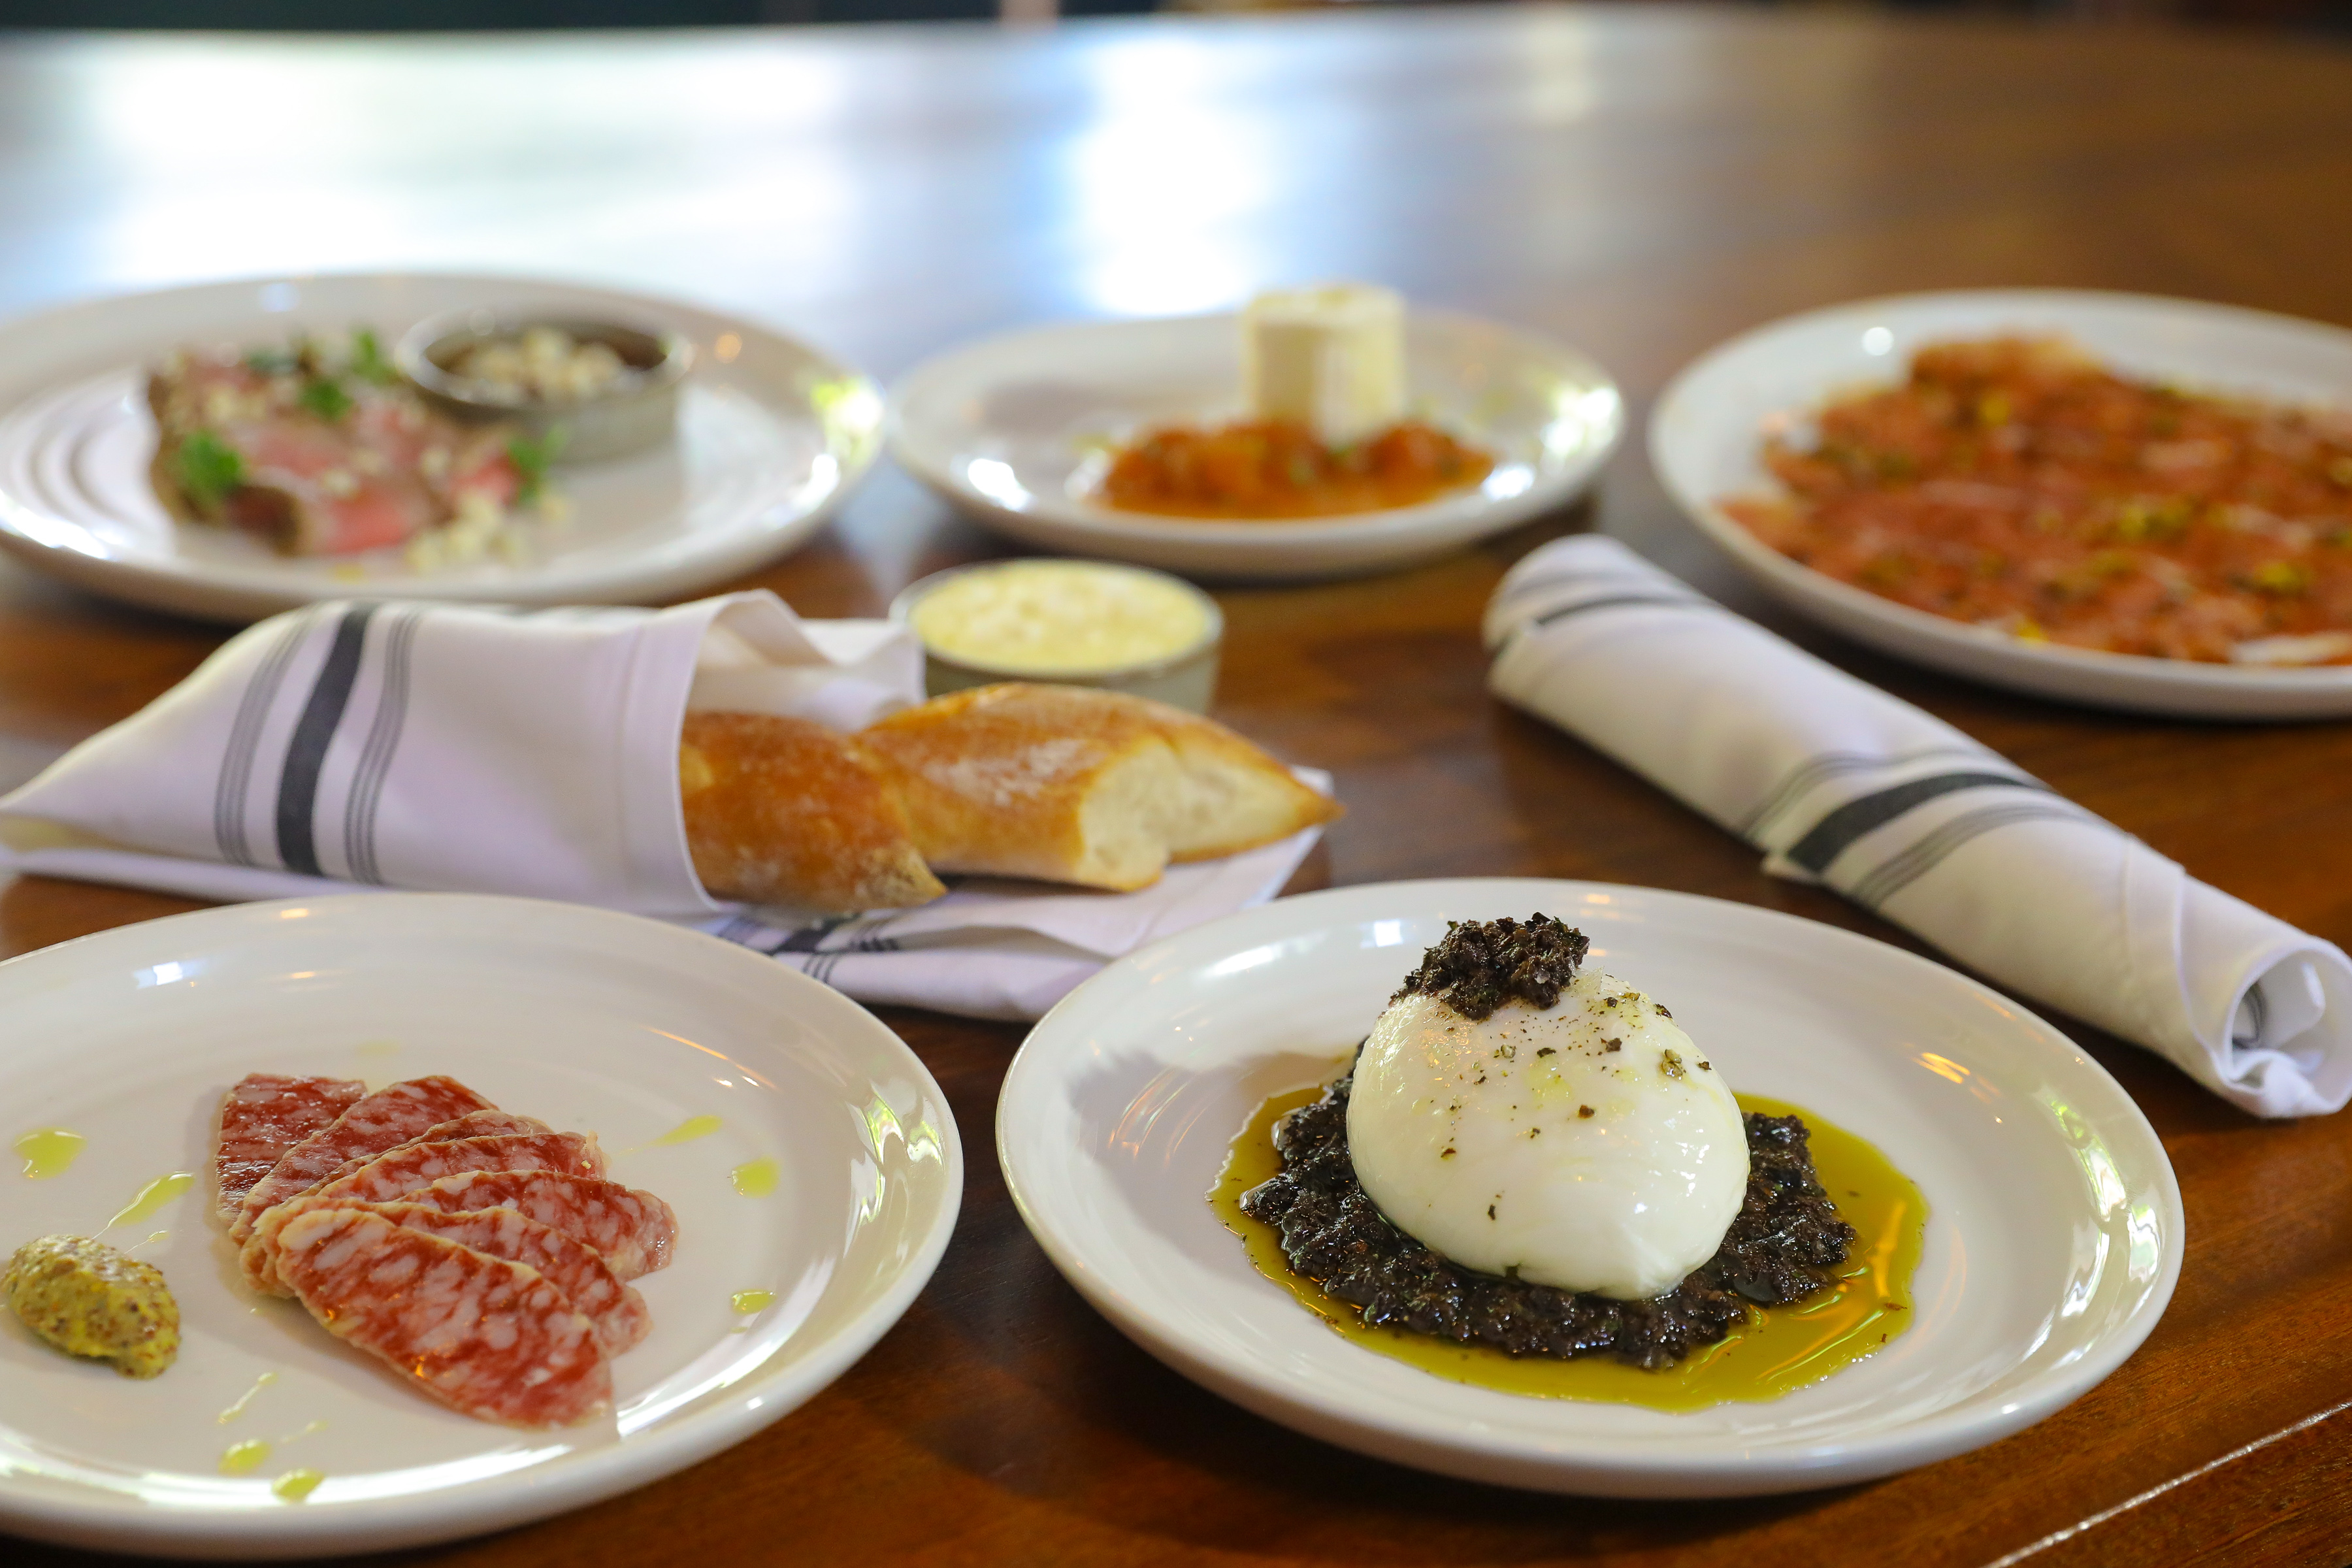 A selection of food from Chezchez, the new bar and restaurant from BV Hospitality